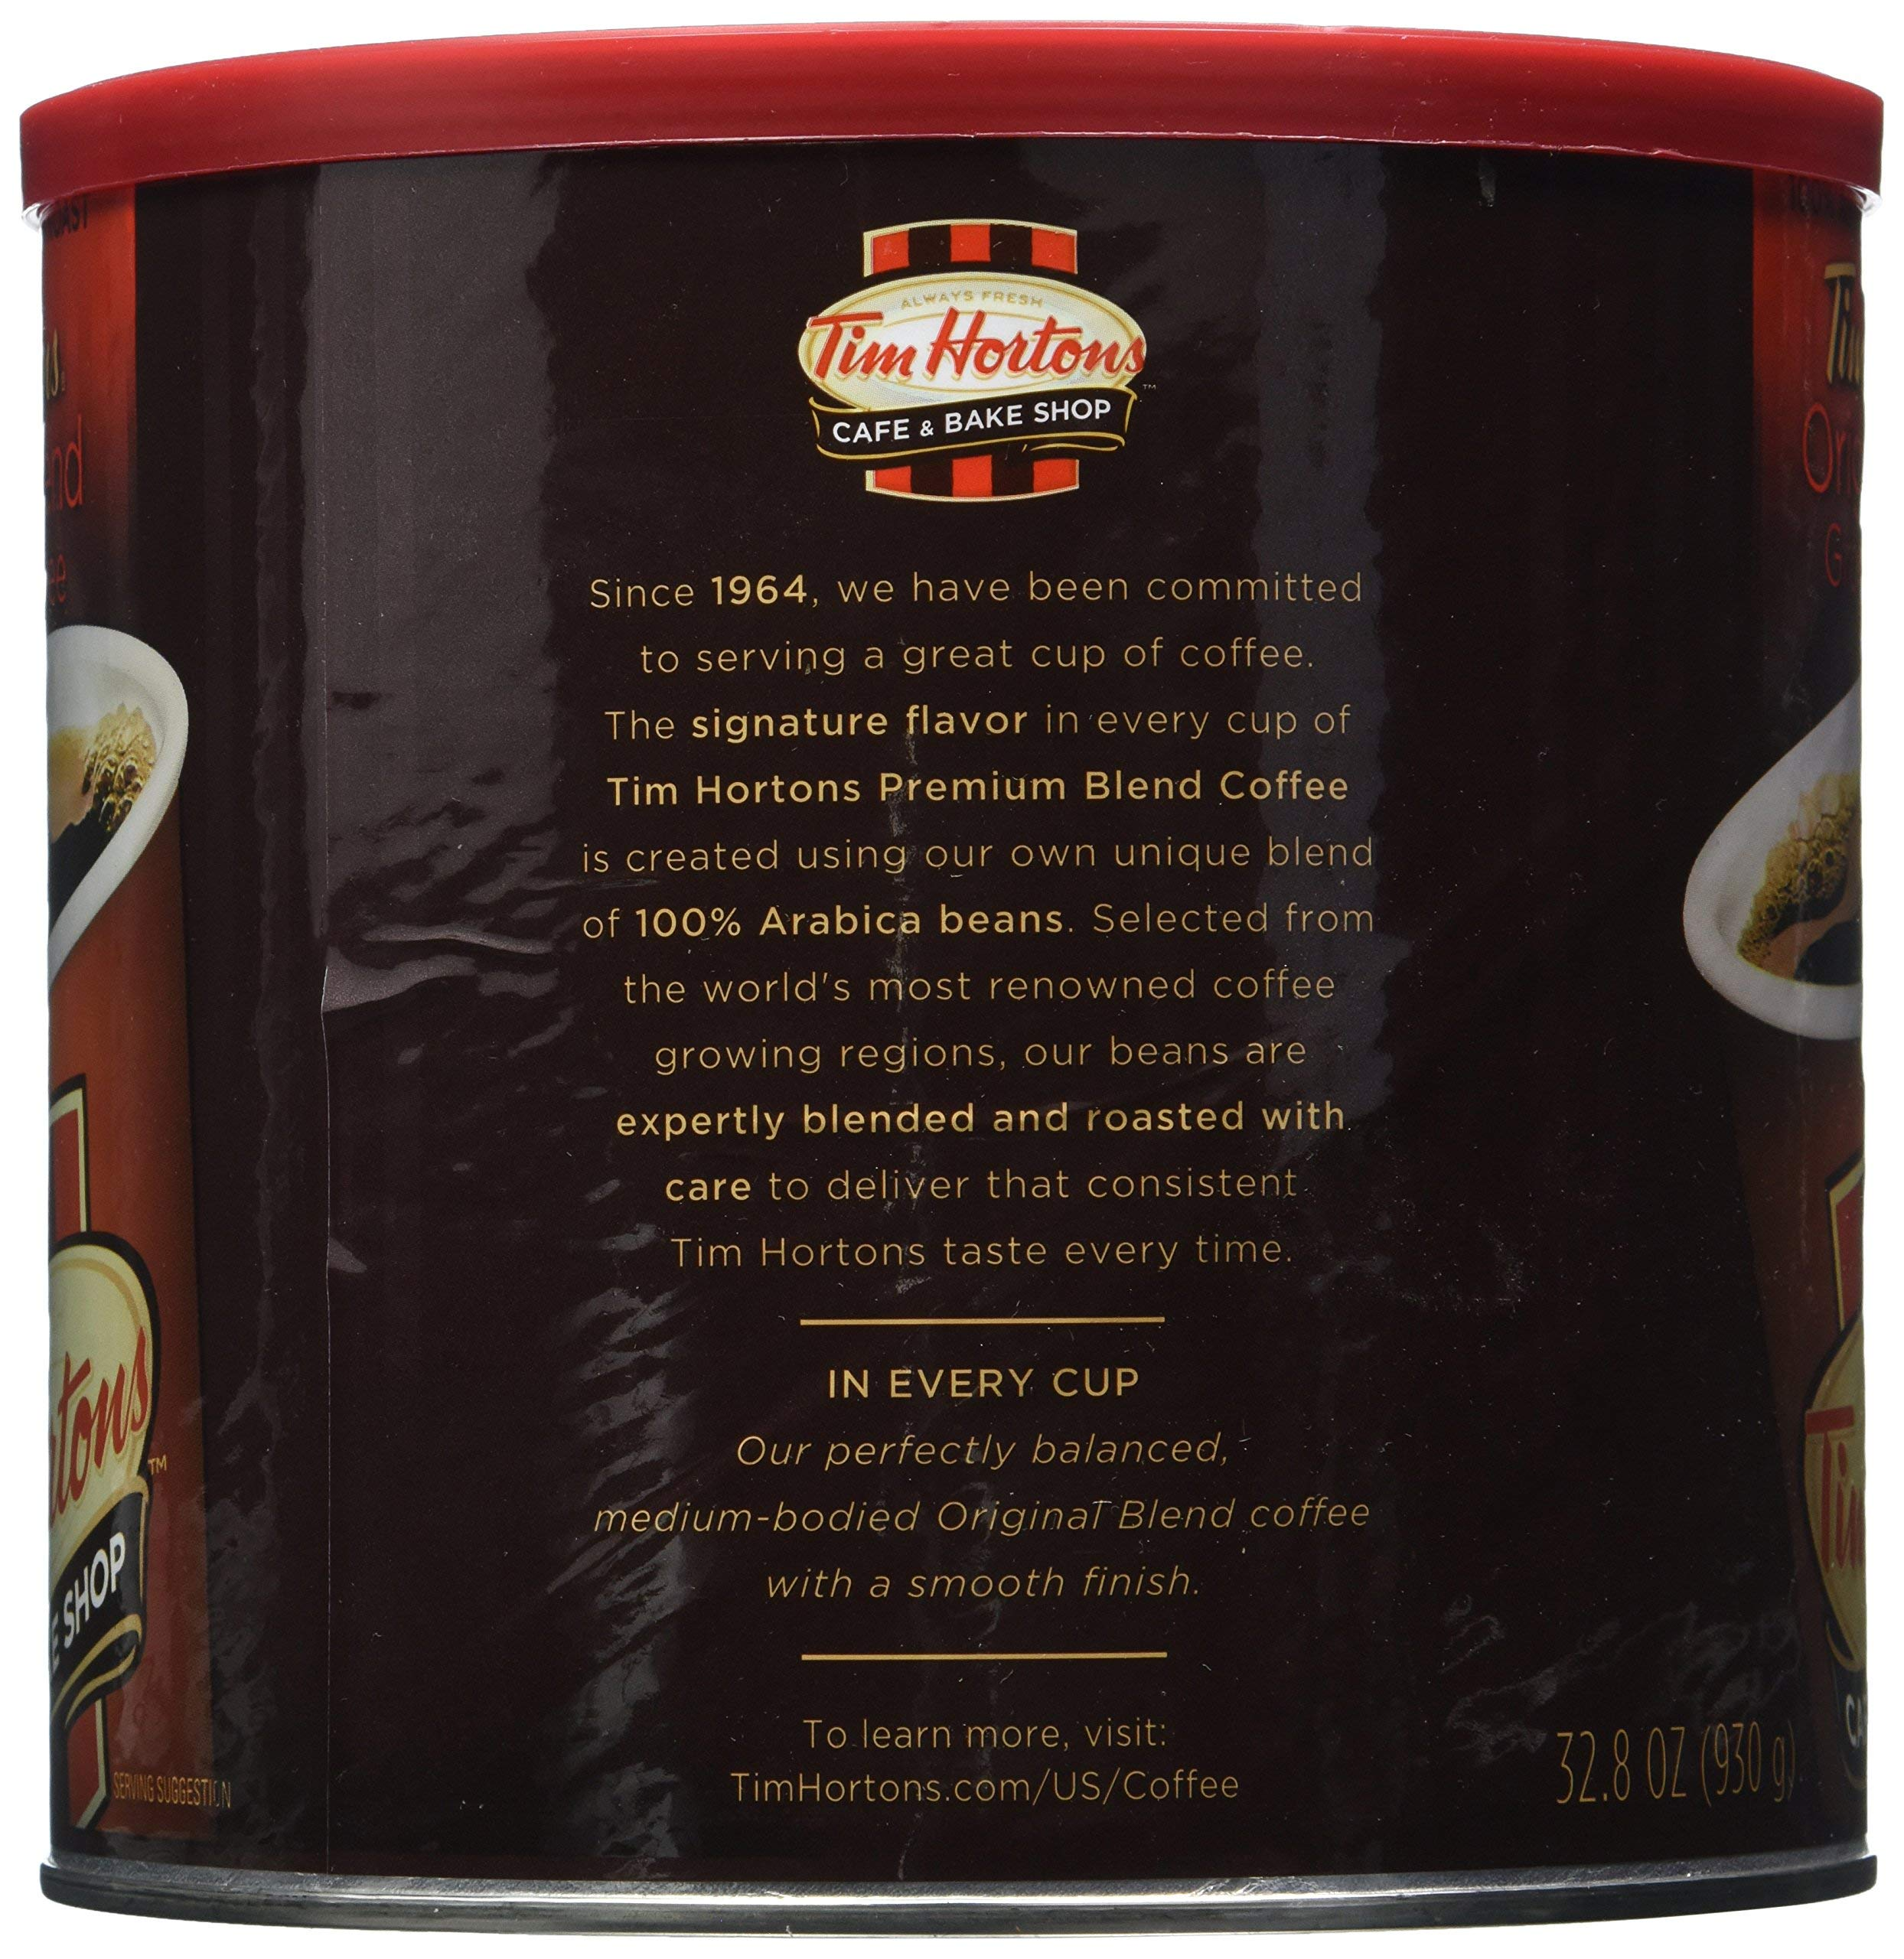 Tim Hortons HBRKMMCX 100% Arabica Medium Roast Original Blend Ground Coffee, 32.8 Ounce, Pack of 2 by Tim Hortons (Image #1)